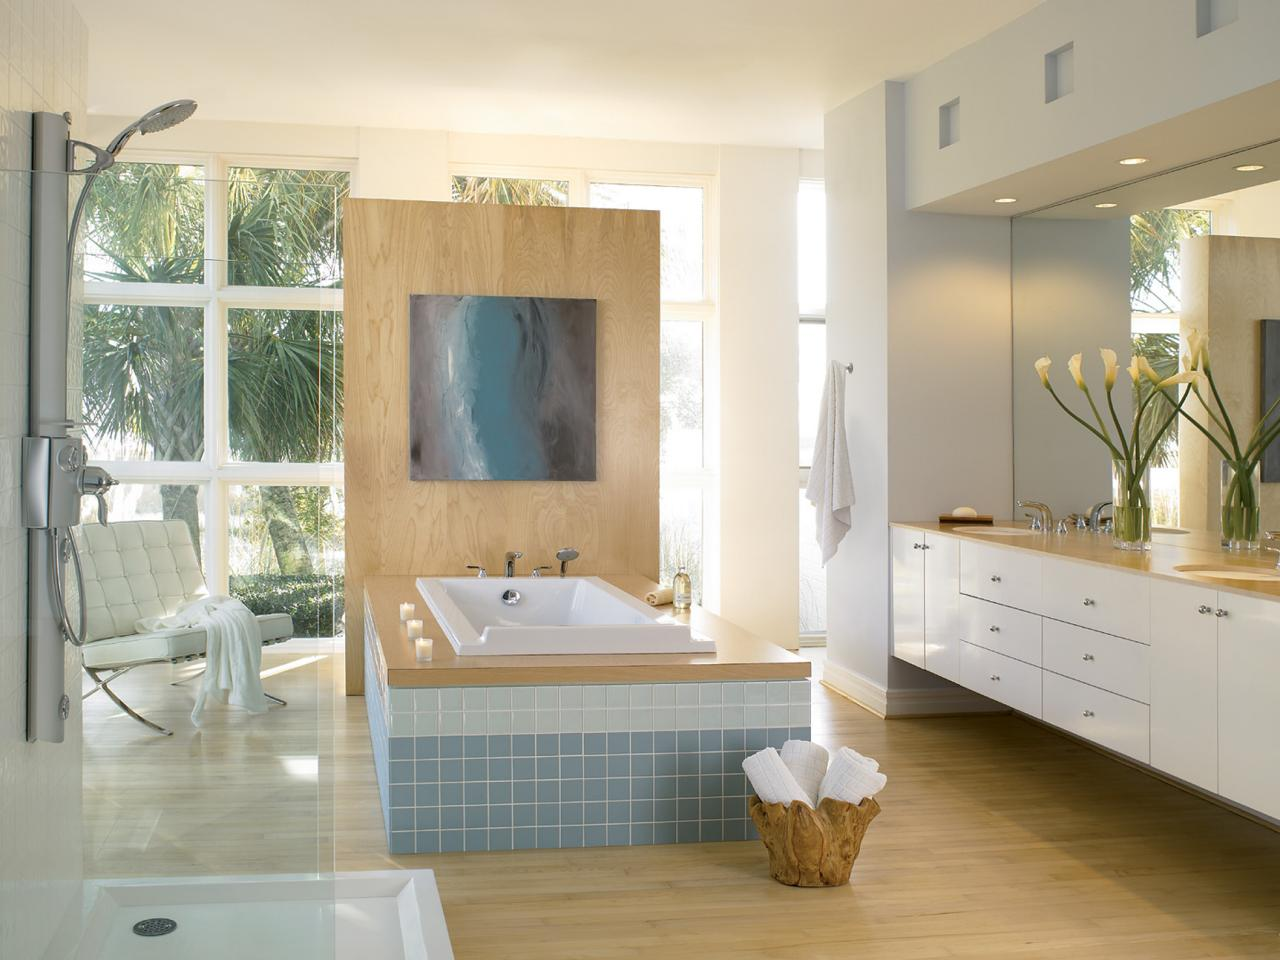 Remodeling Tips For The Master Bath DIY